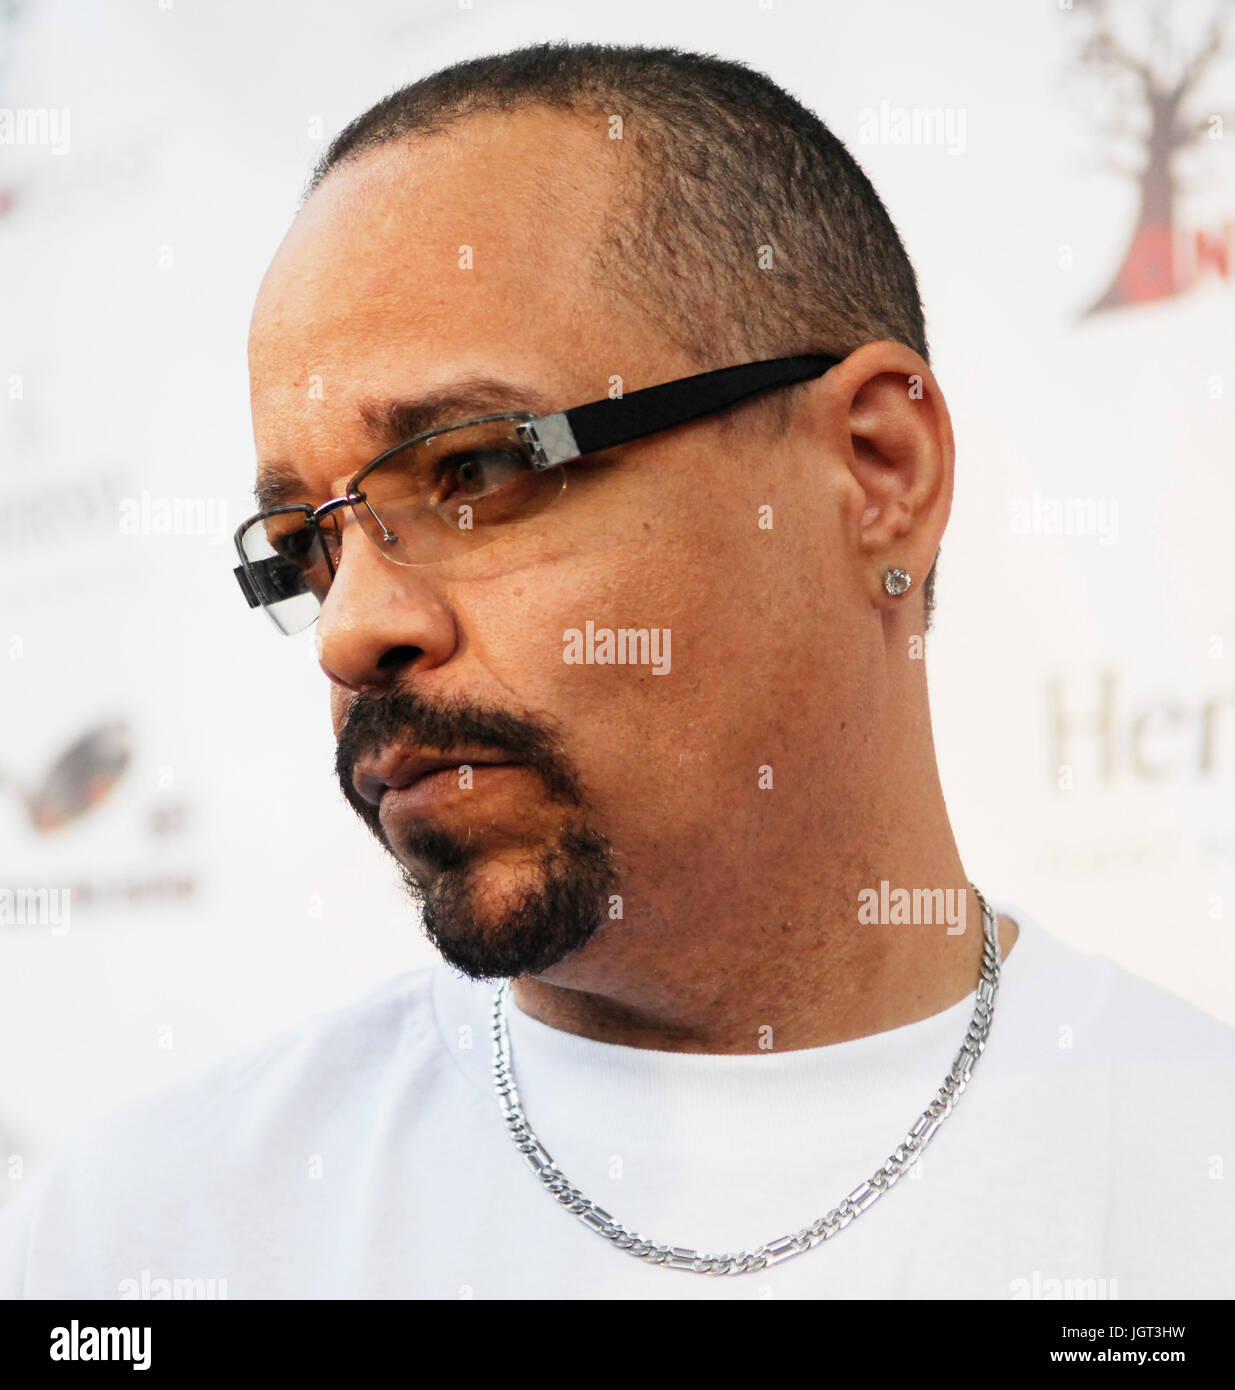 Actor/Rapper Ice-T attends 9th Annual Hollywood Black Film Festival Beverly Hills. - Stock Image